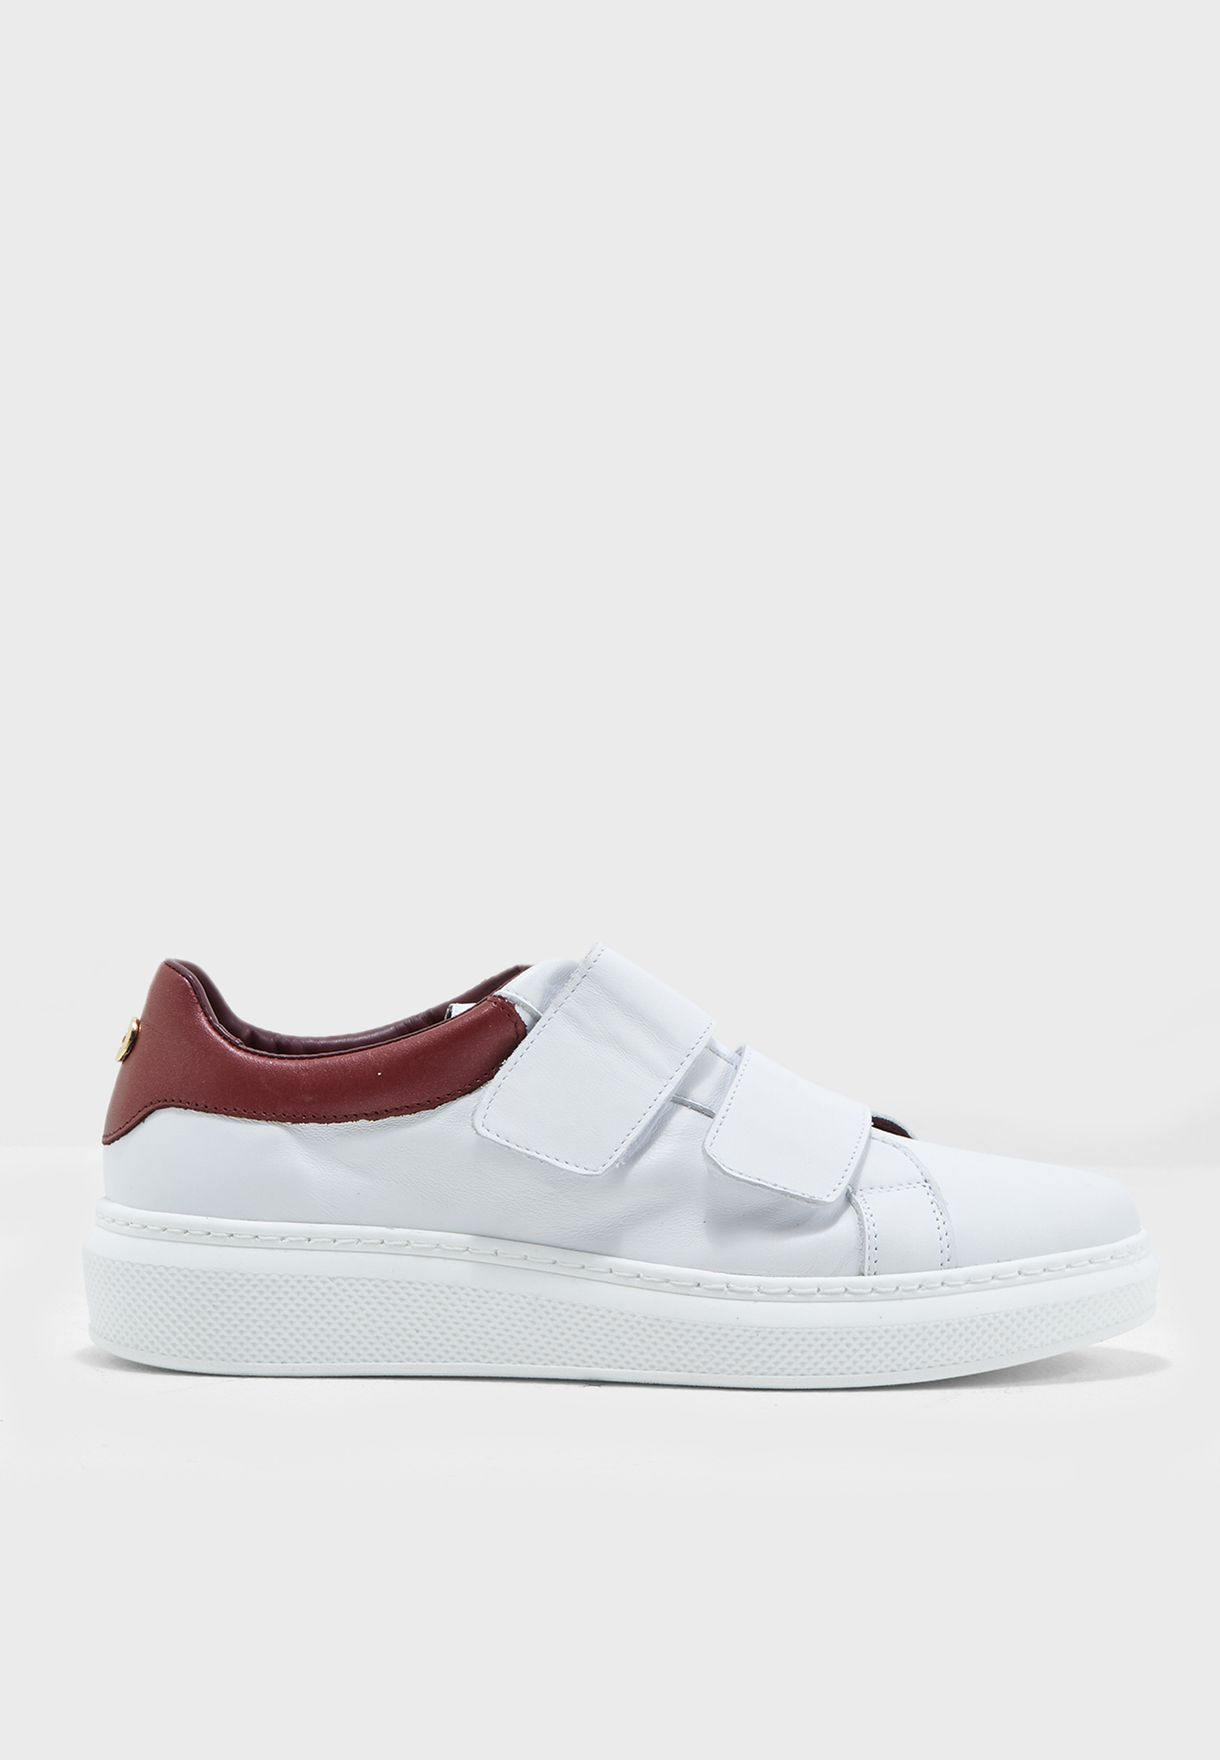 3e724b1e5 Shop Tommy Hilfiger white Flat Low Top Sneakers FW0FW01952 for Women ...